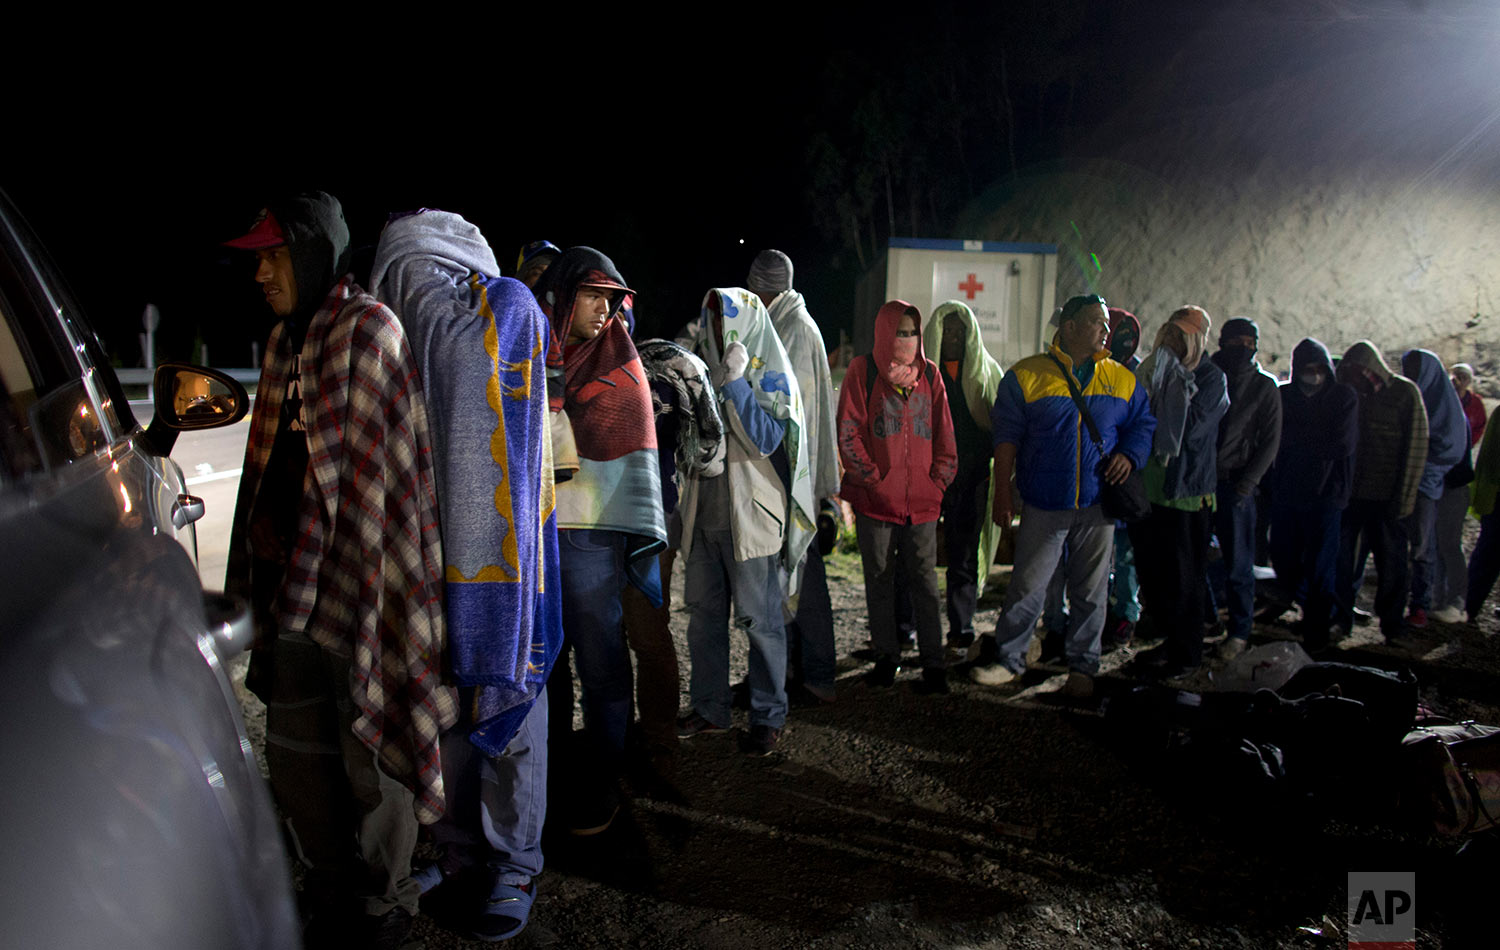 In this Friday, Aug. 31, 2018 photo, Venezuelan migrants line up for free bread and coffee, donated by a Colombian family from their car, at a gas station in Pamplona, Colombia. (AP Photo/Ariana Cubillos)